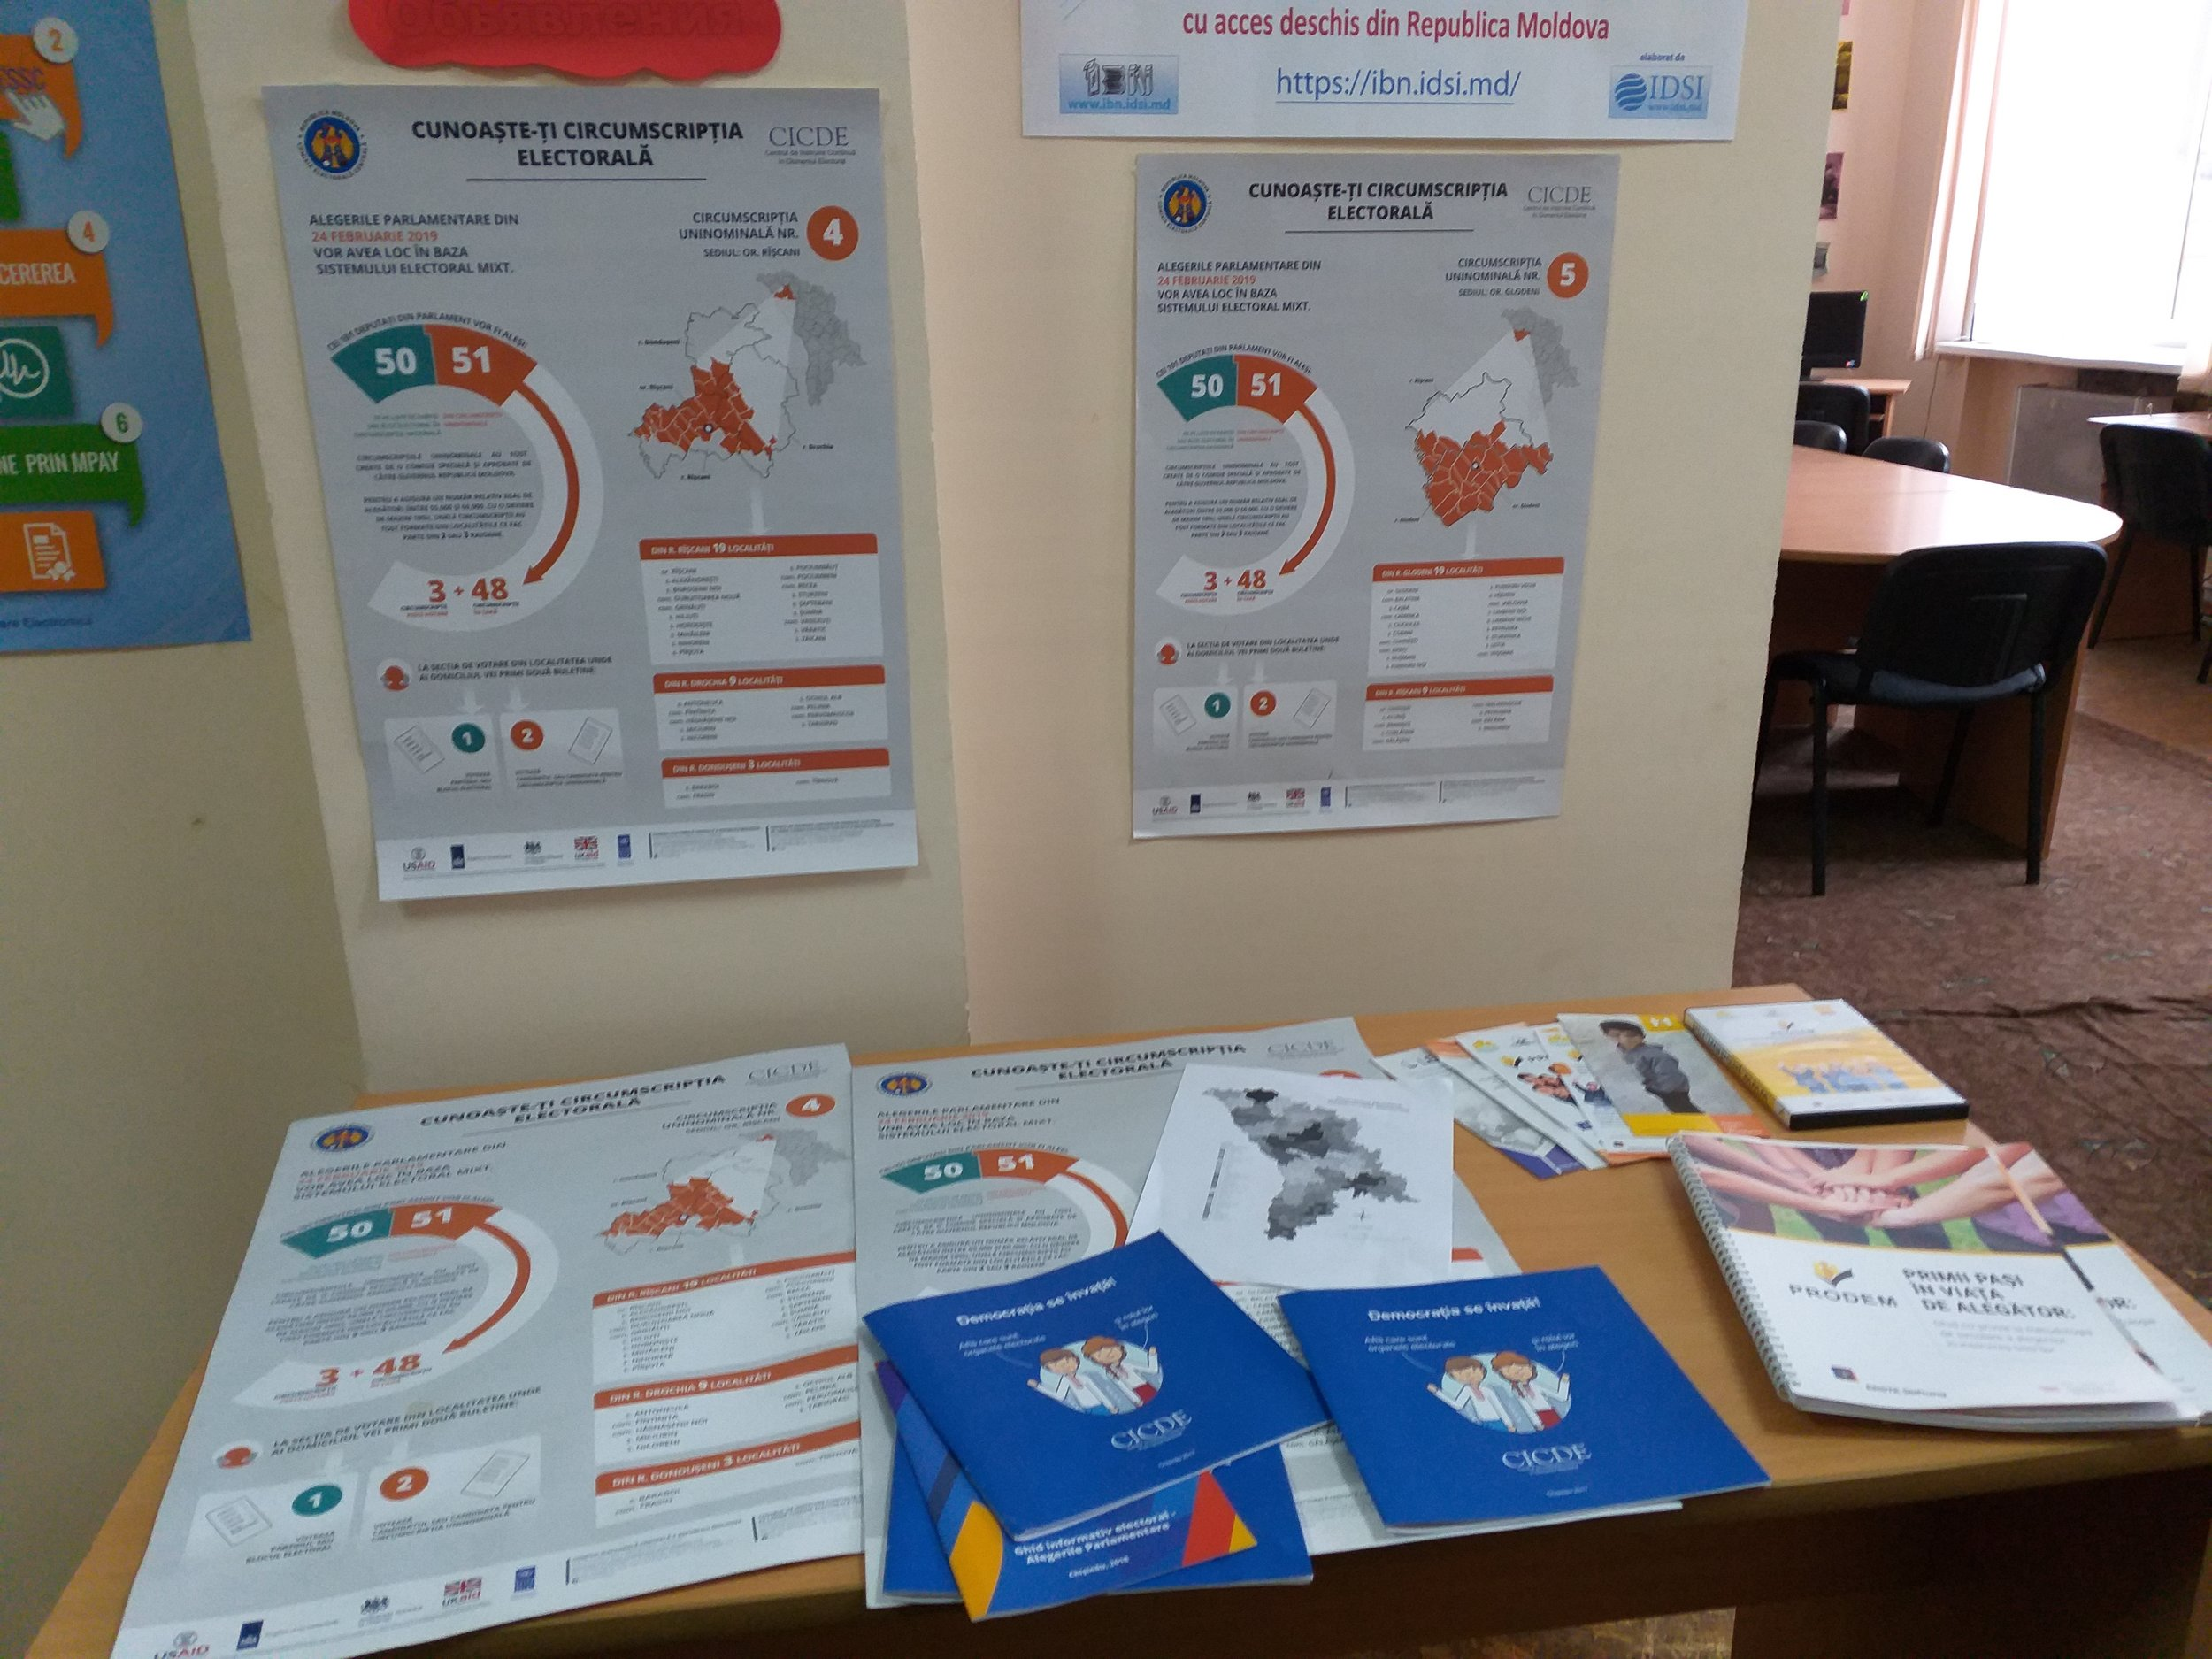 IRI observers found voter education materials at a library in Riscani.